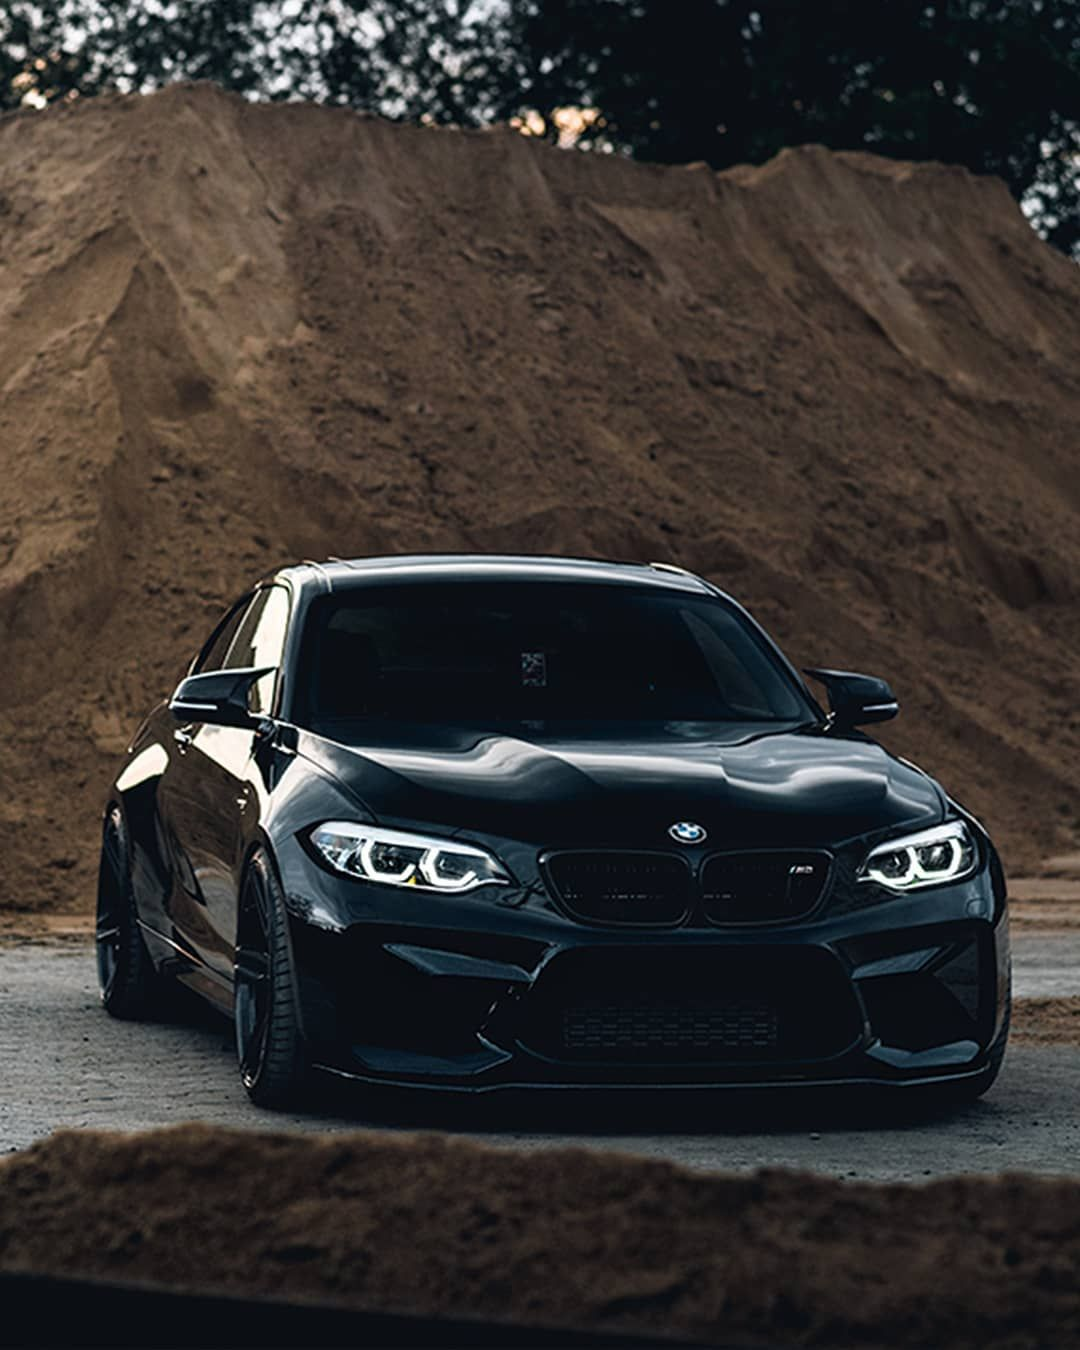 Bmw M Gmbh On Instagram Black Never Gets Old Neither Does Style